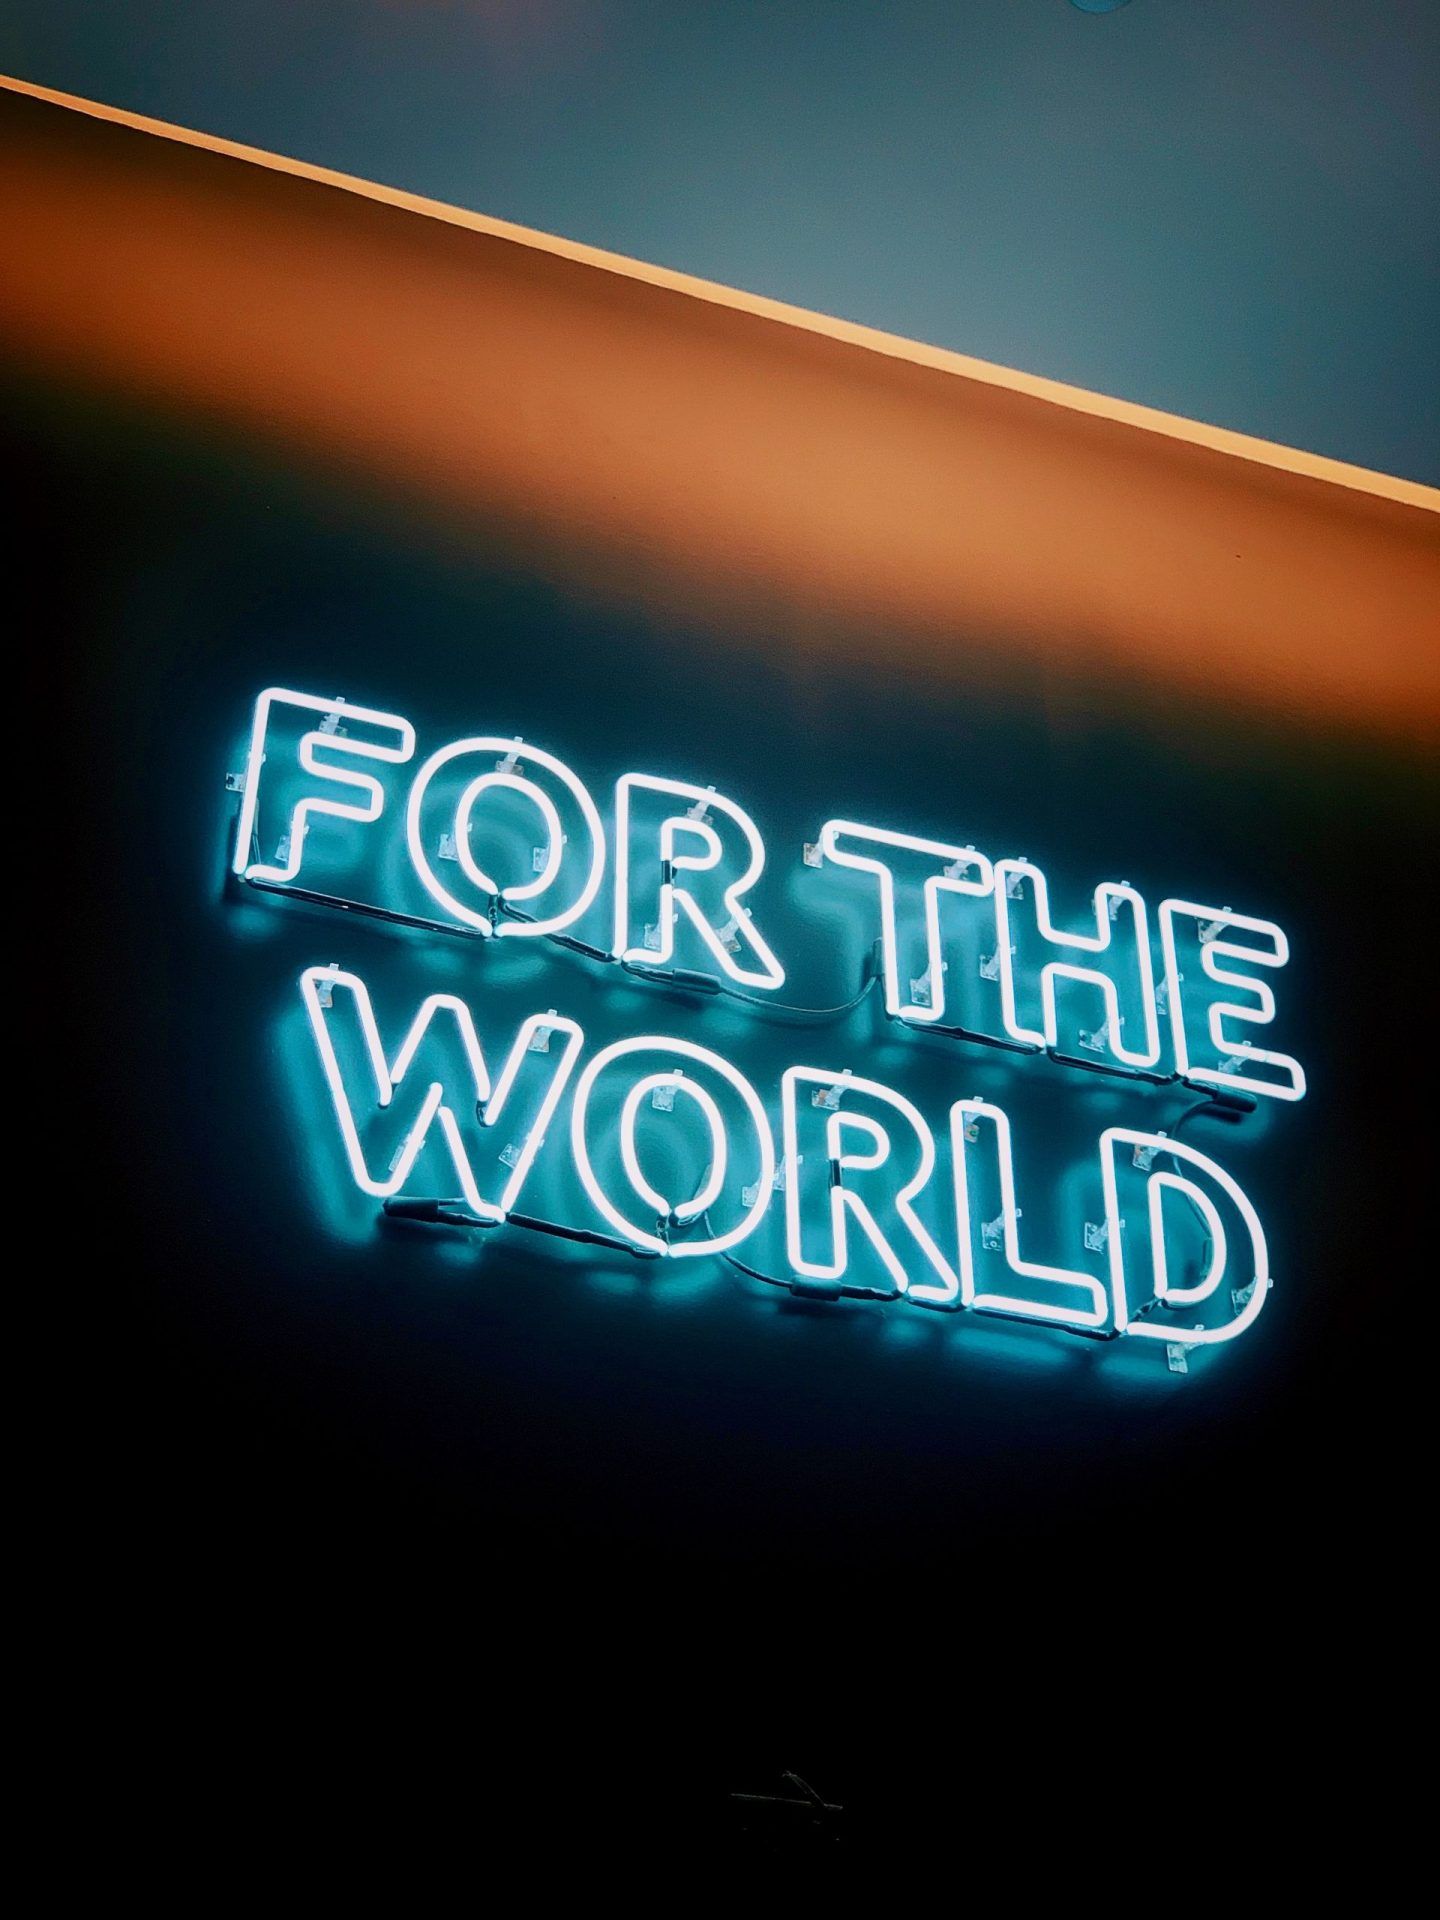 "Staying positive during Coronavirus: ""for the world"" written as a neon sign"